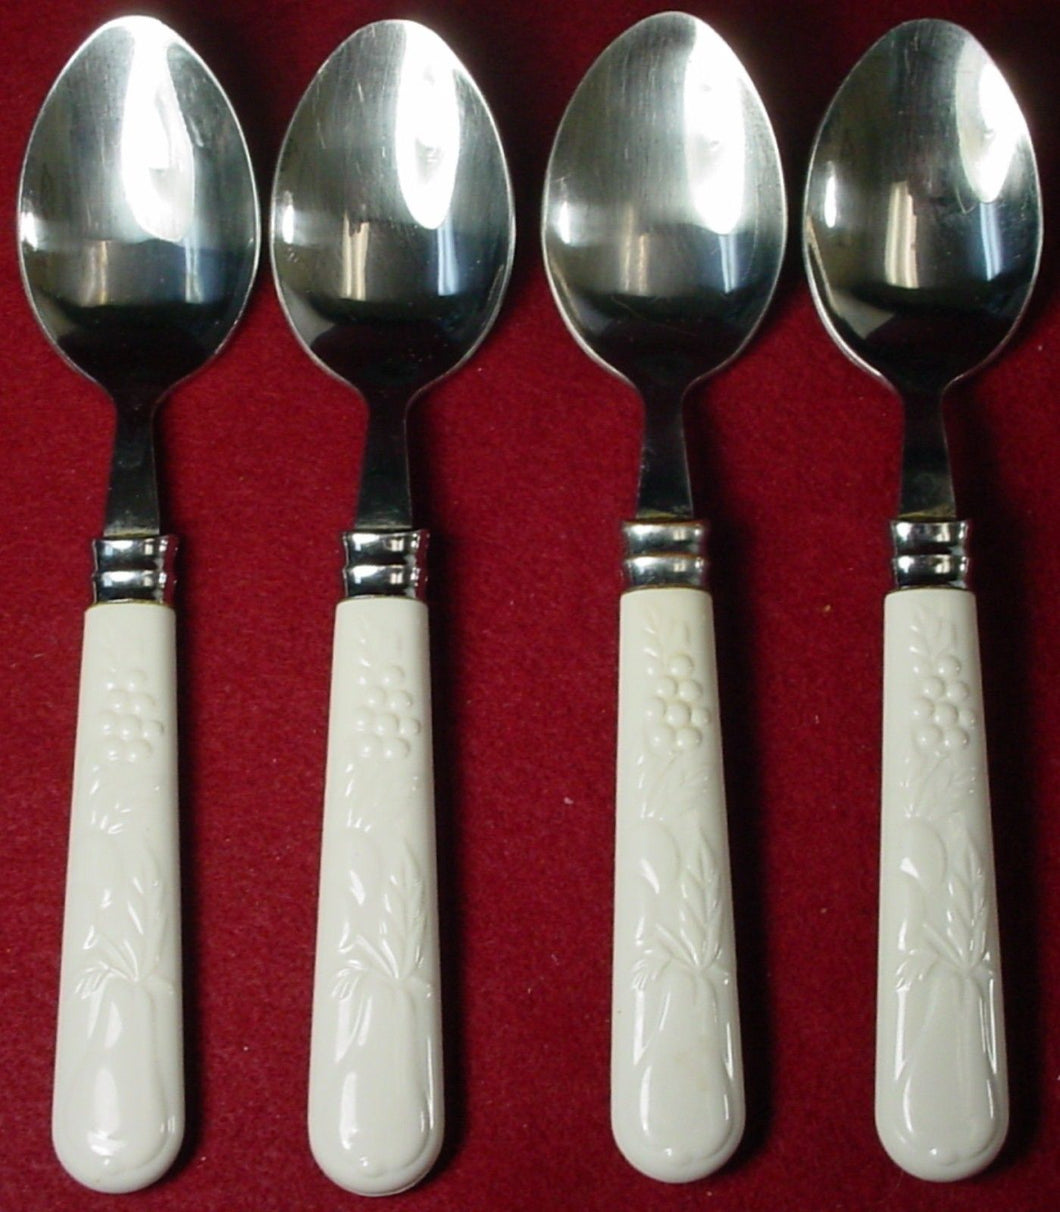 GIBSON flatware FRUIT ACCESSORIES pattern PLACE/OVAL SOUP SPOON 7-5/8